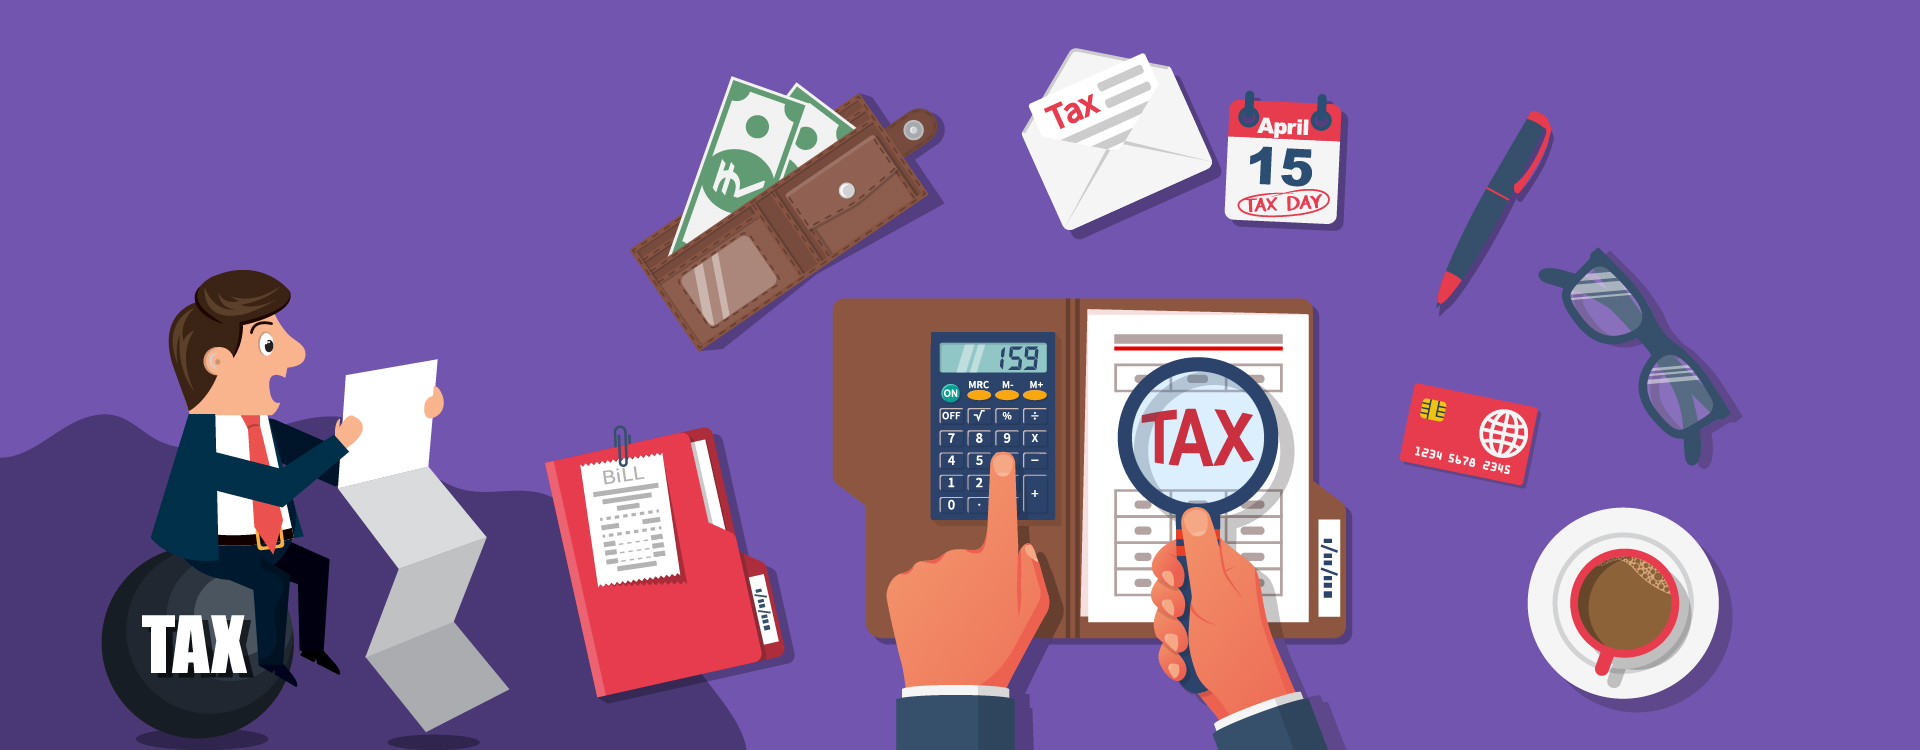 Income Tax: How Do Businesses Pay Taxes?-Dutch Uncles